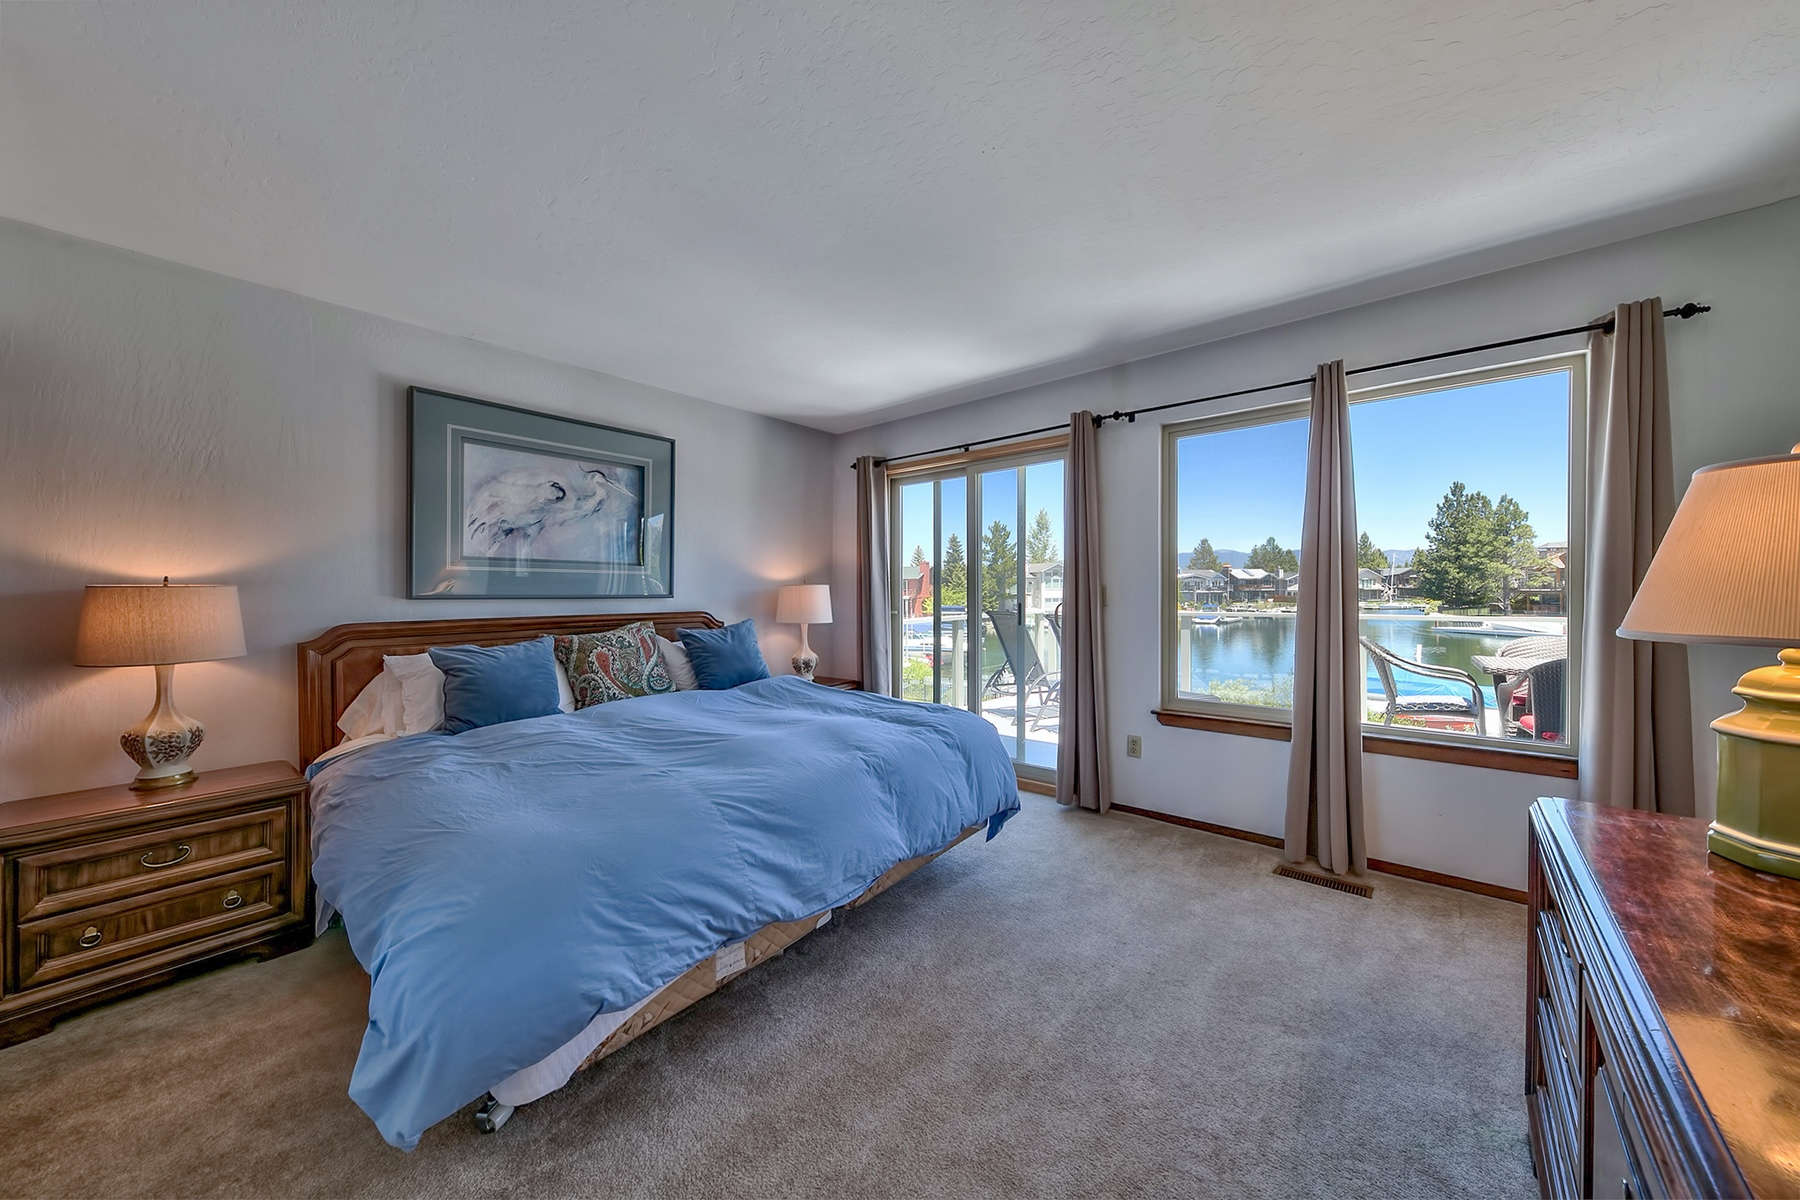 Additional photo for property listing at 573 Alpine View Drive, South Lake Tahoe, CA 573 Alpine Drive South Lake Tahoe, California 96150 United States